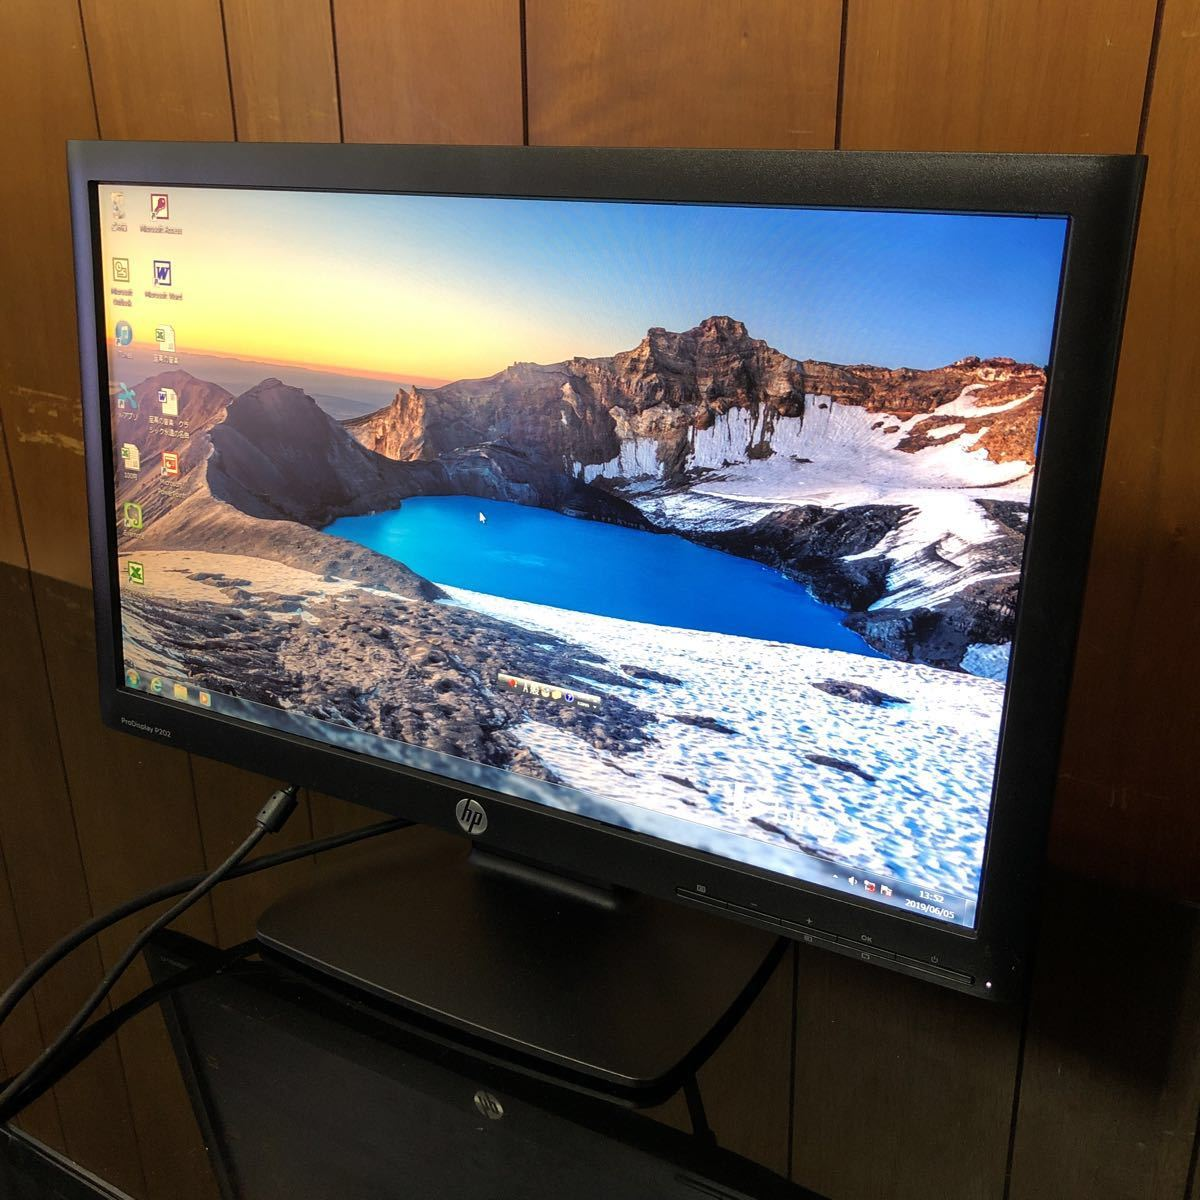 beautiful goods 2015 year made hp ProDisplay P202 high resolution wide  liquid crystal display (1600x900) 20 -inch PC liquid crystal monitor all  sorts code attaching : Real Yahoo auction salling